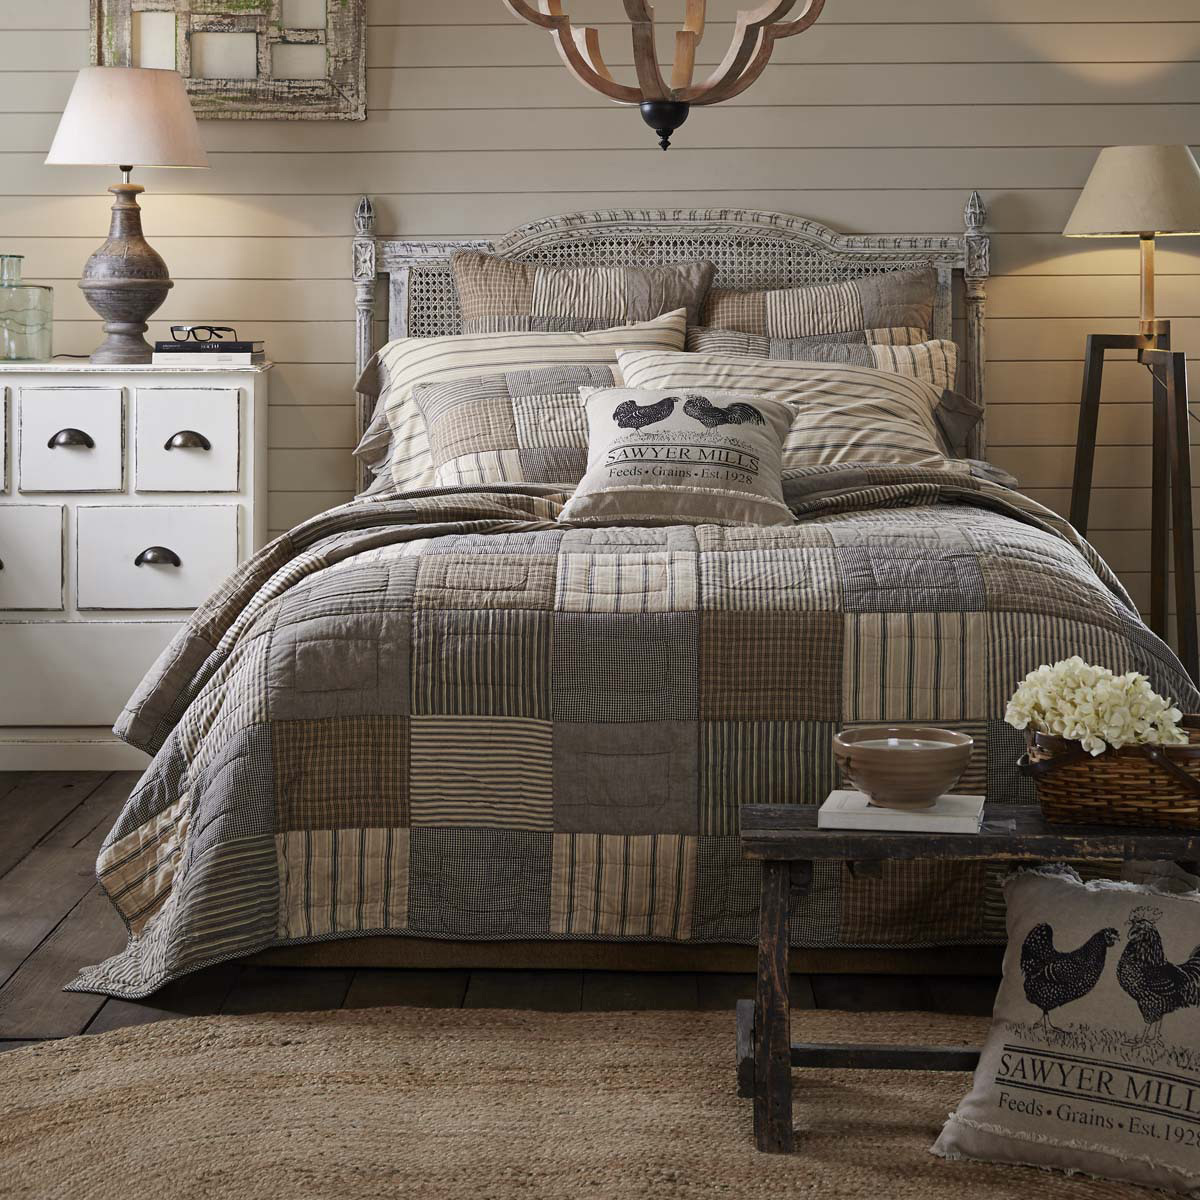 Sawyer Mill Quilt, by VHC Brands.